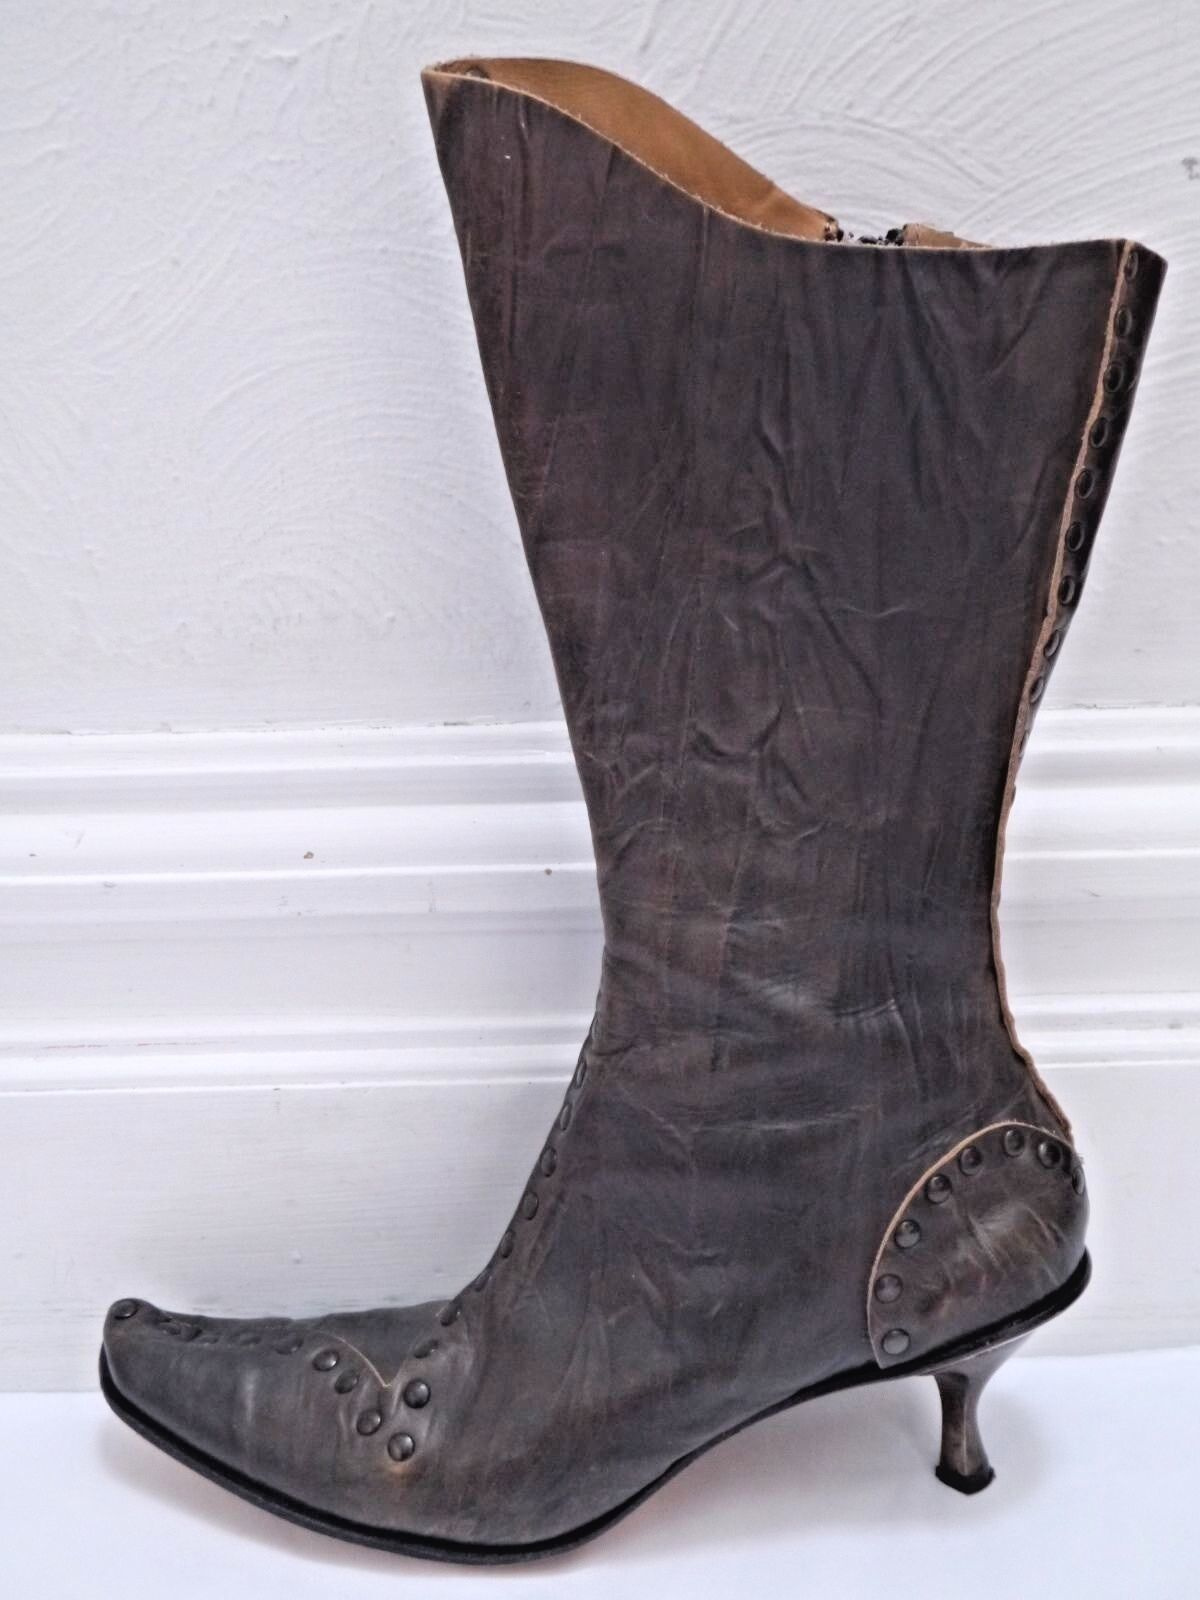 CYDWOQ VINTAGE  524 Bach studded studded studded brown leather boots size 38.5 WORN ONCE 965aa4